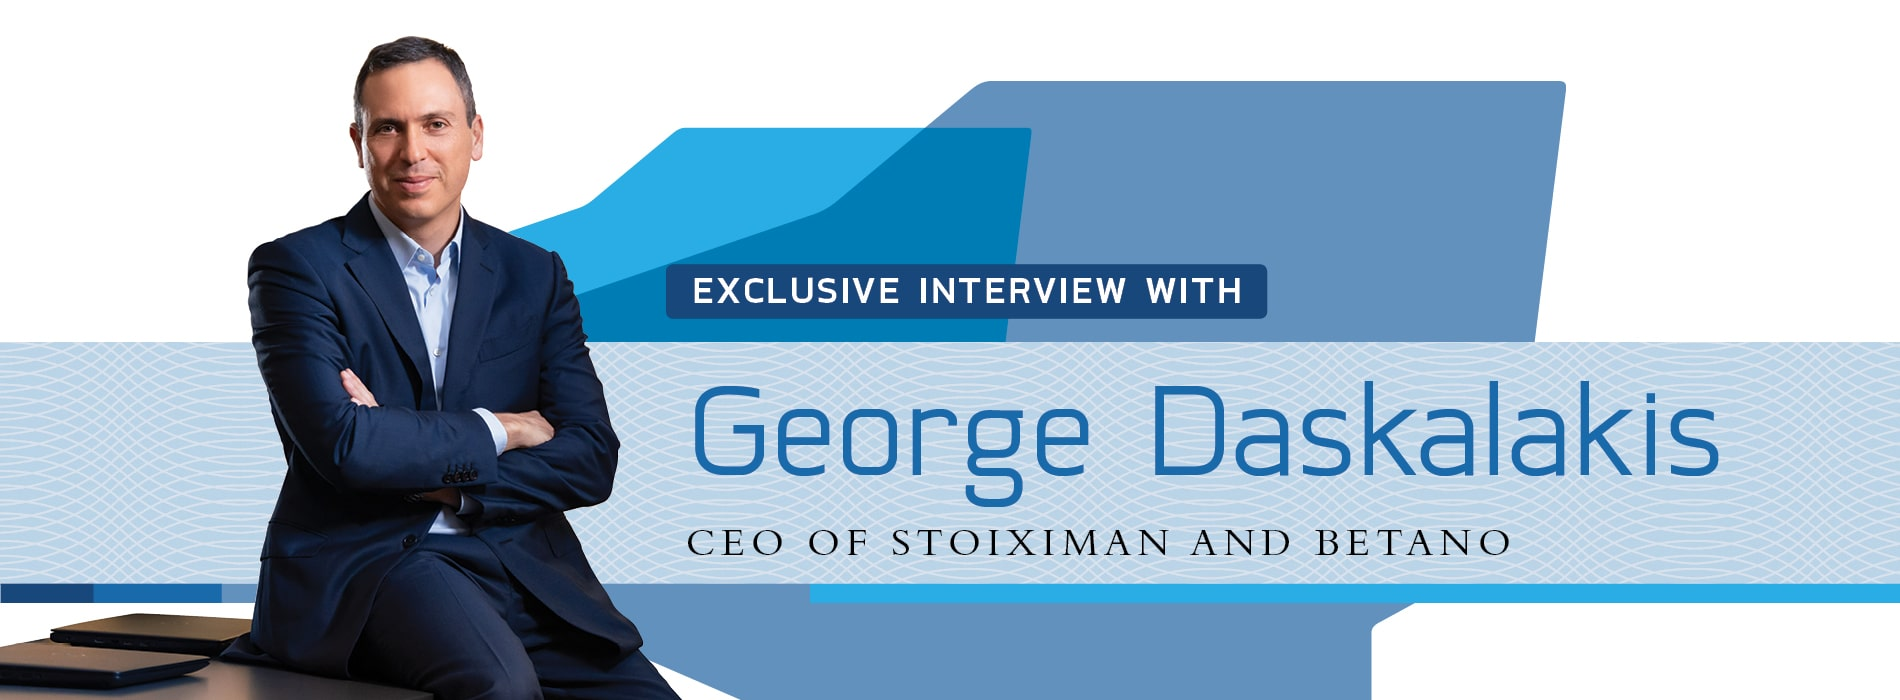 Interview with George Daskalakis,CEO of Stoiximan and Betano